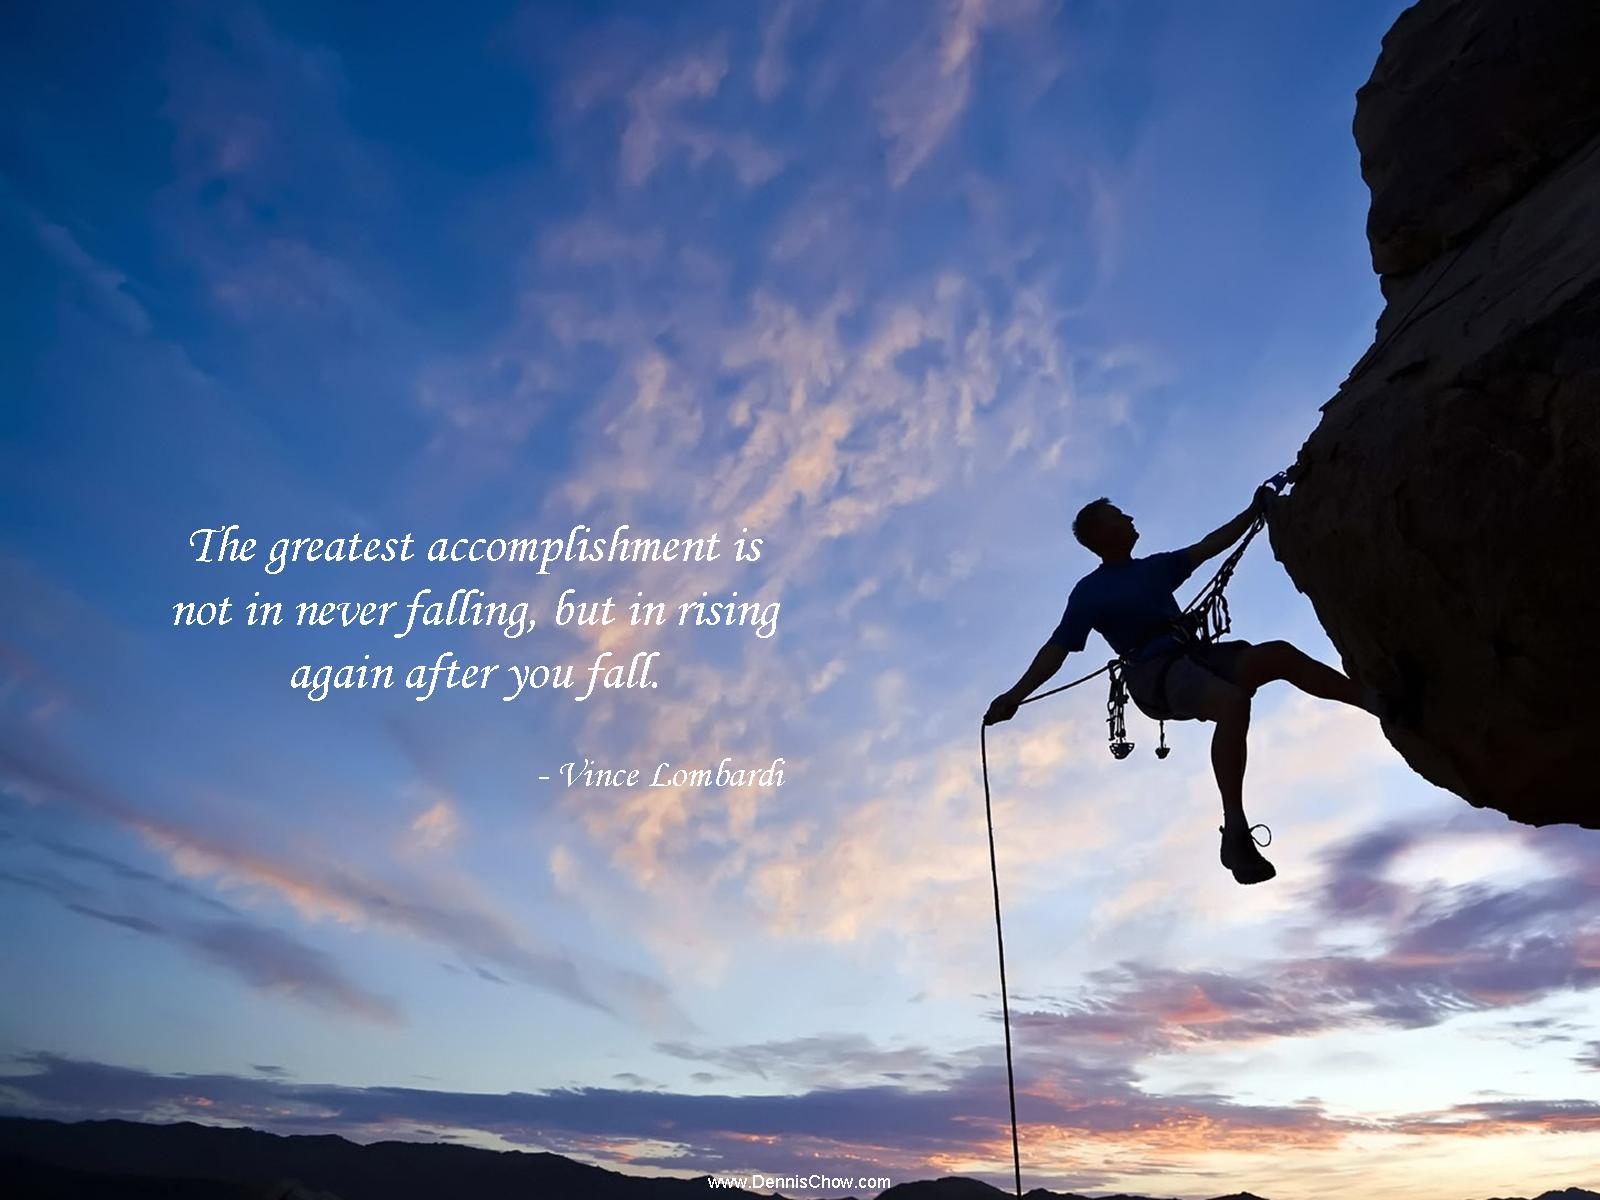 Motivational quotes for students uk